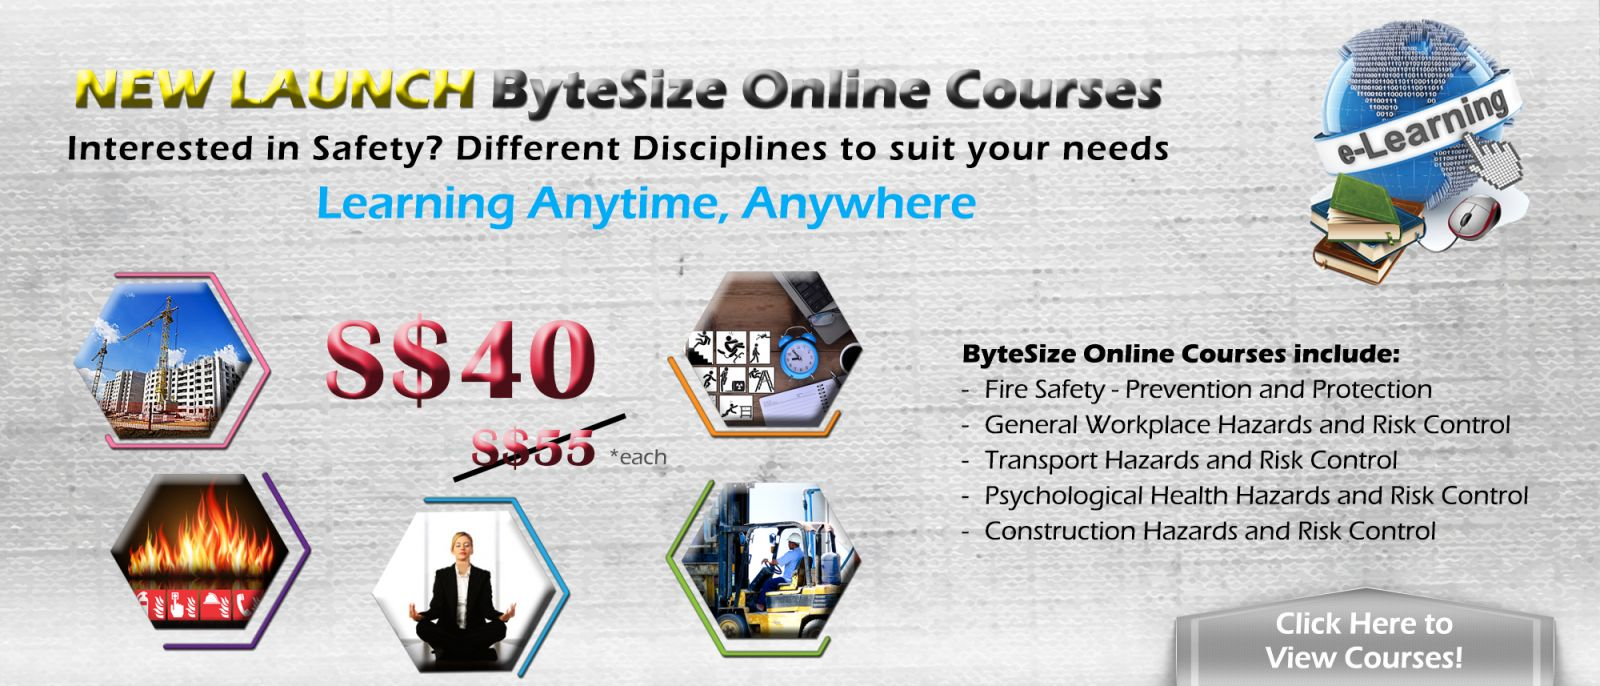 New Launch: KBAT ByteSize Courses